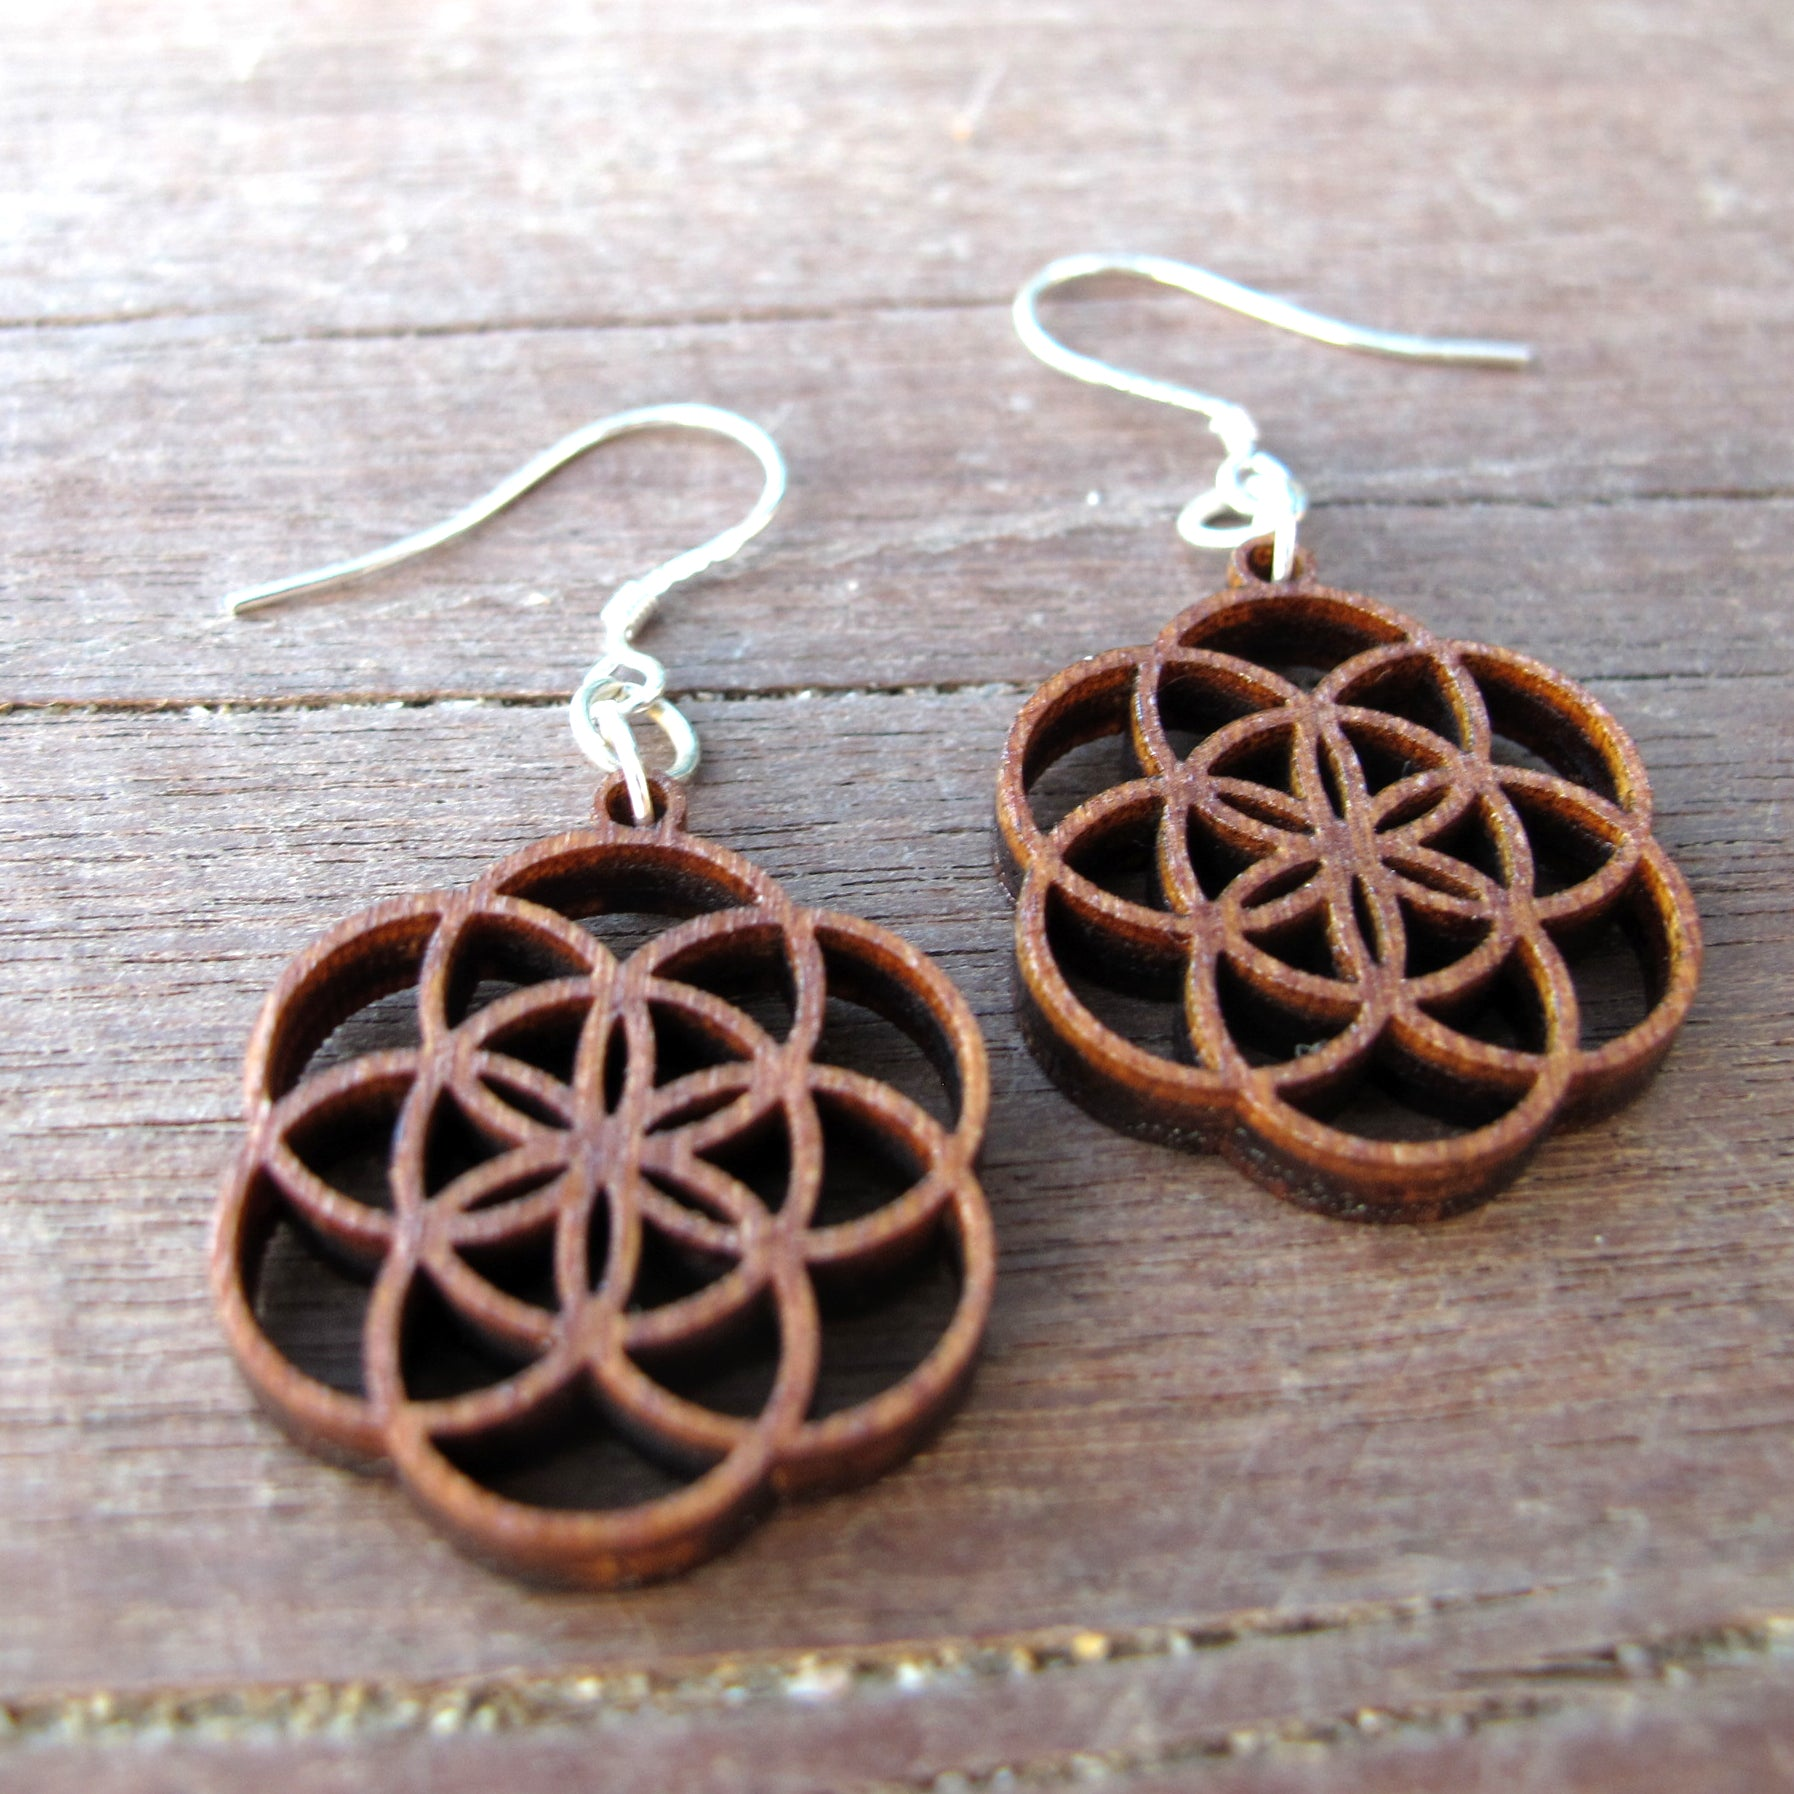 Casual Earrings Seed of Life Super Small, 20mm, Sacred Geometry Yoga